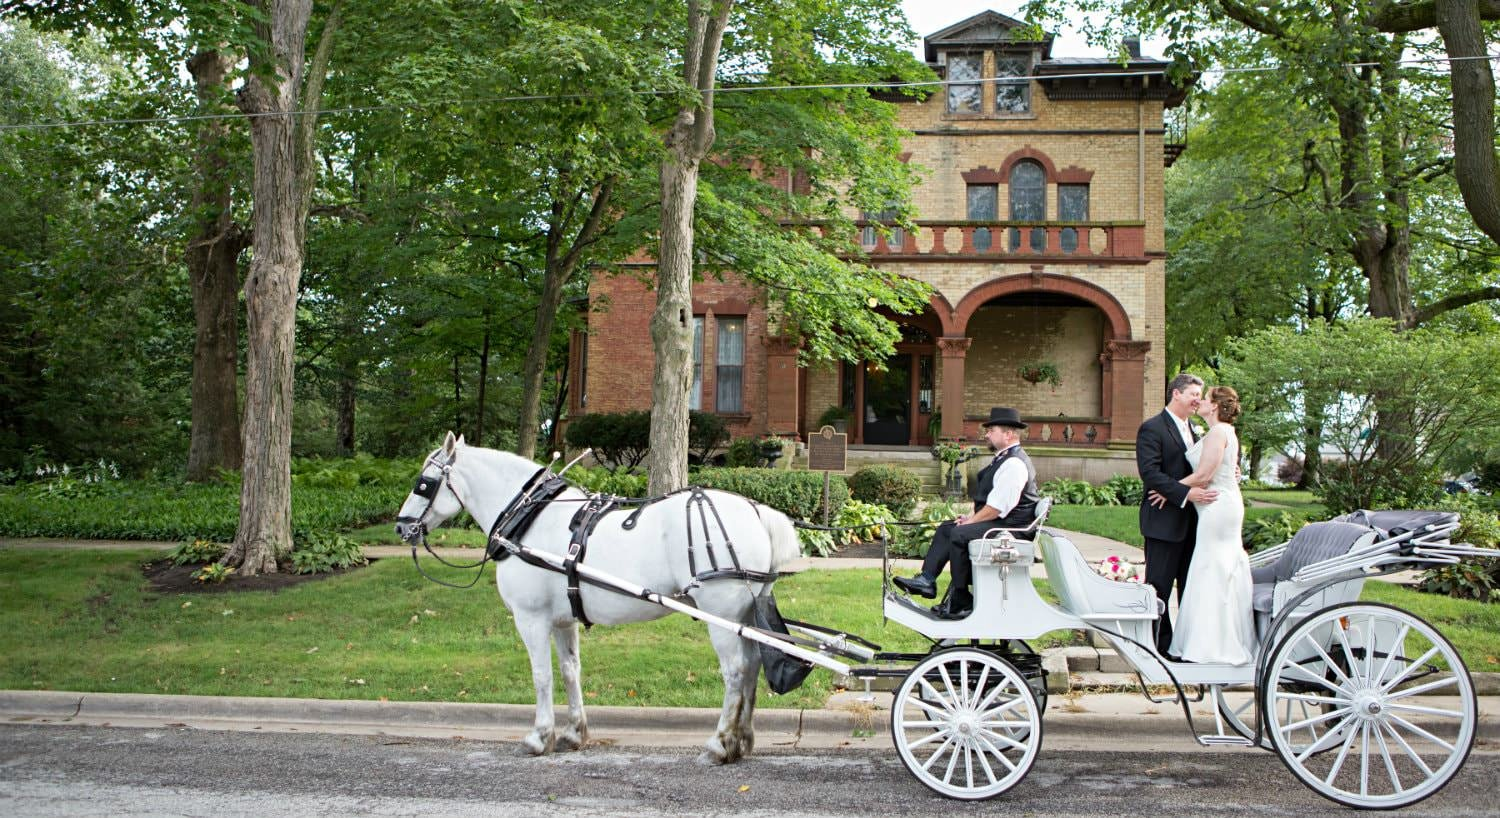 Bride and groom embracing in a white horse drawn carriage in front of the Vrooman mansion surrounded by green landscaping